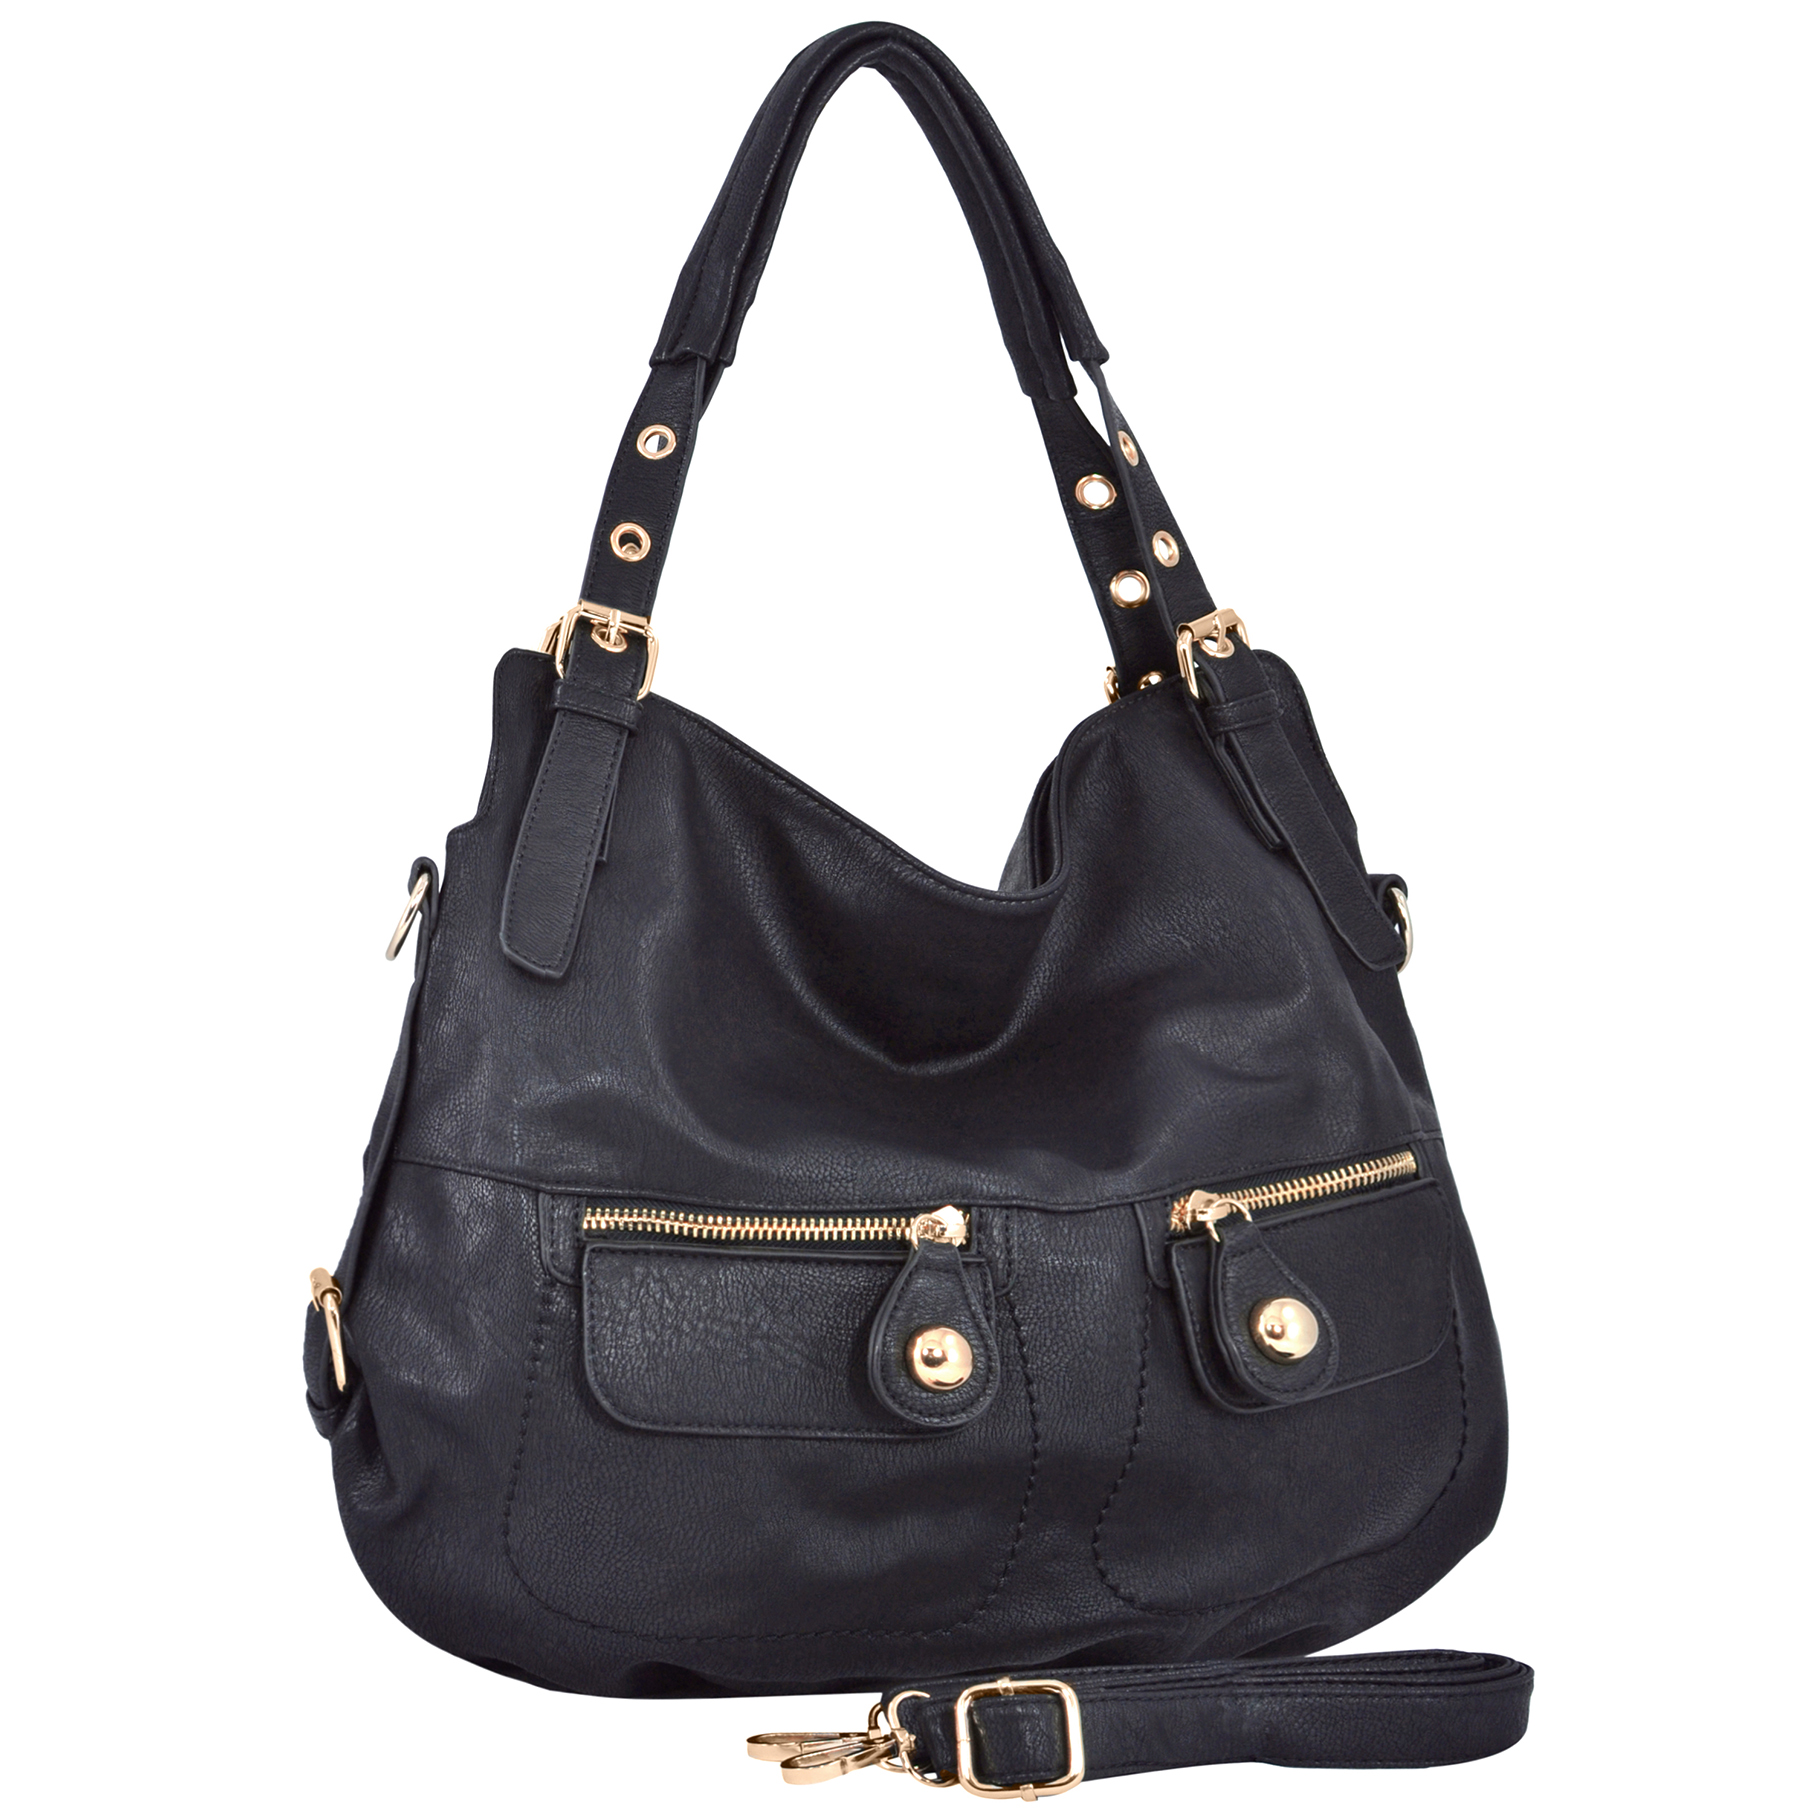 mg-collection-andrea-trendy-large-hobo-jsh-ab-1039bk-1.jpg